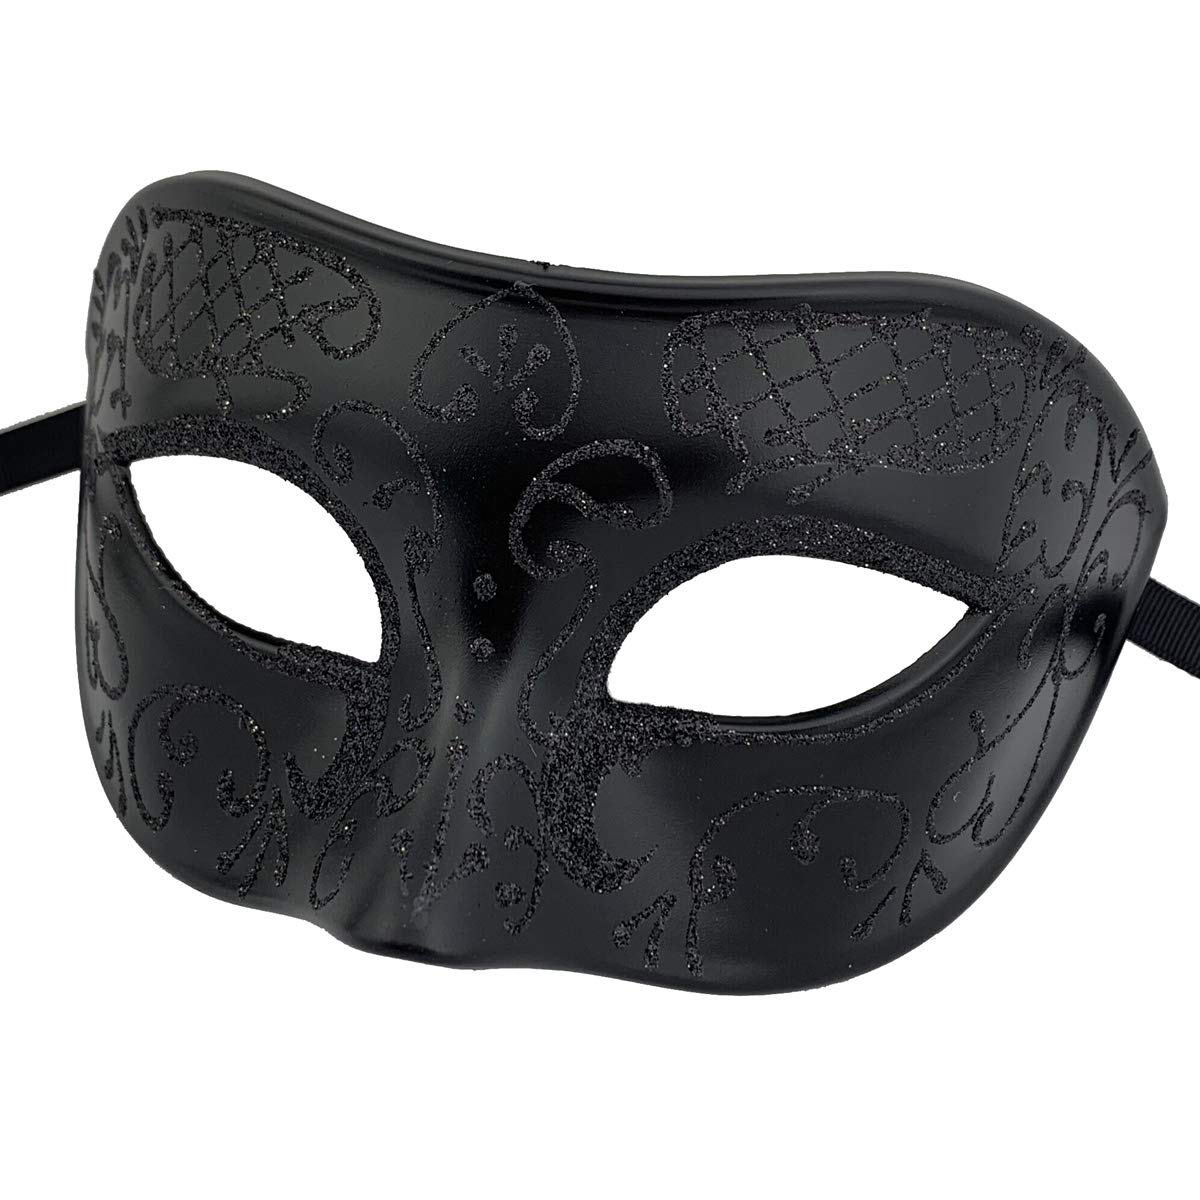 Couples Pair Goth Venetian Masquerade Masks Set Party Costume Masks (Black)